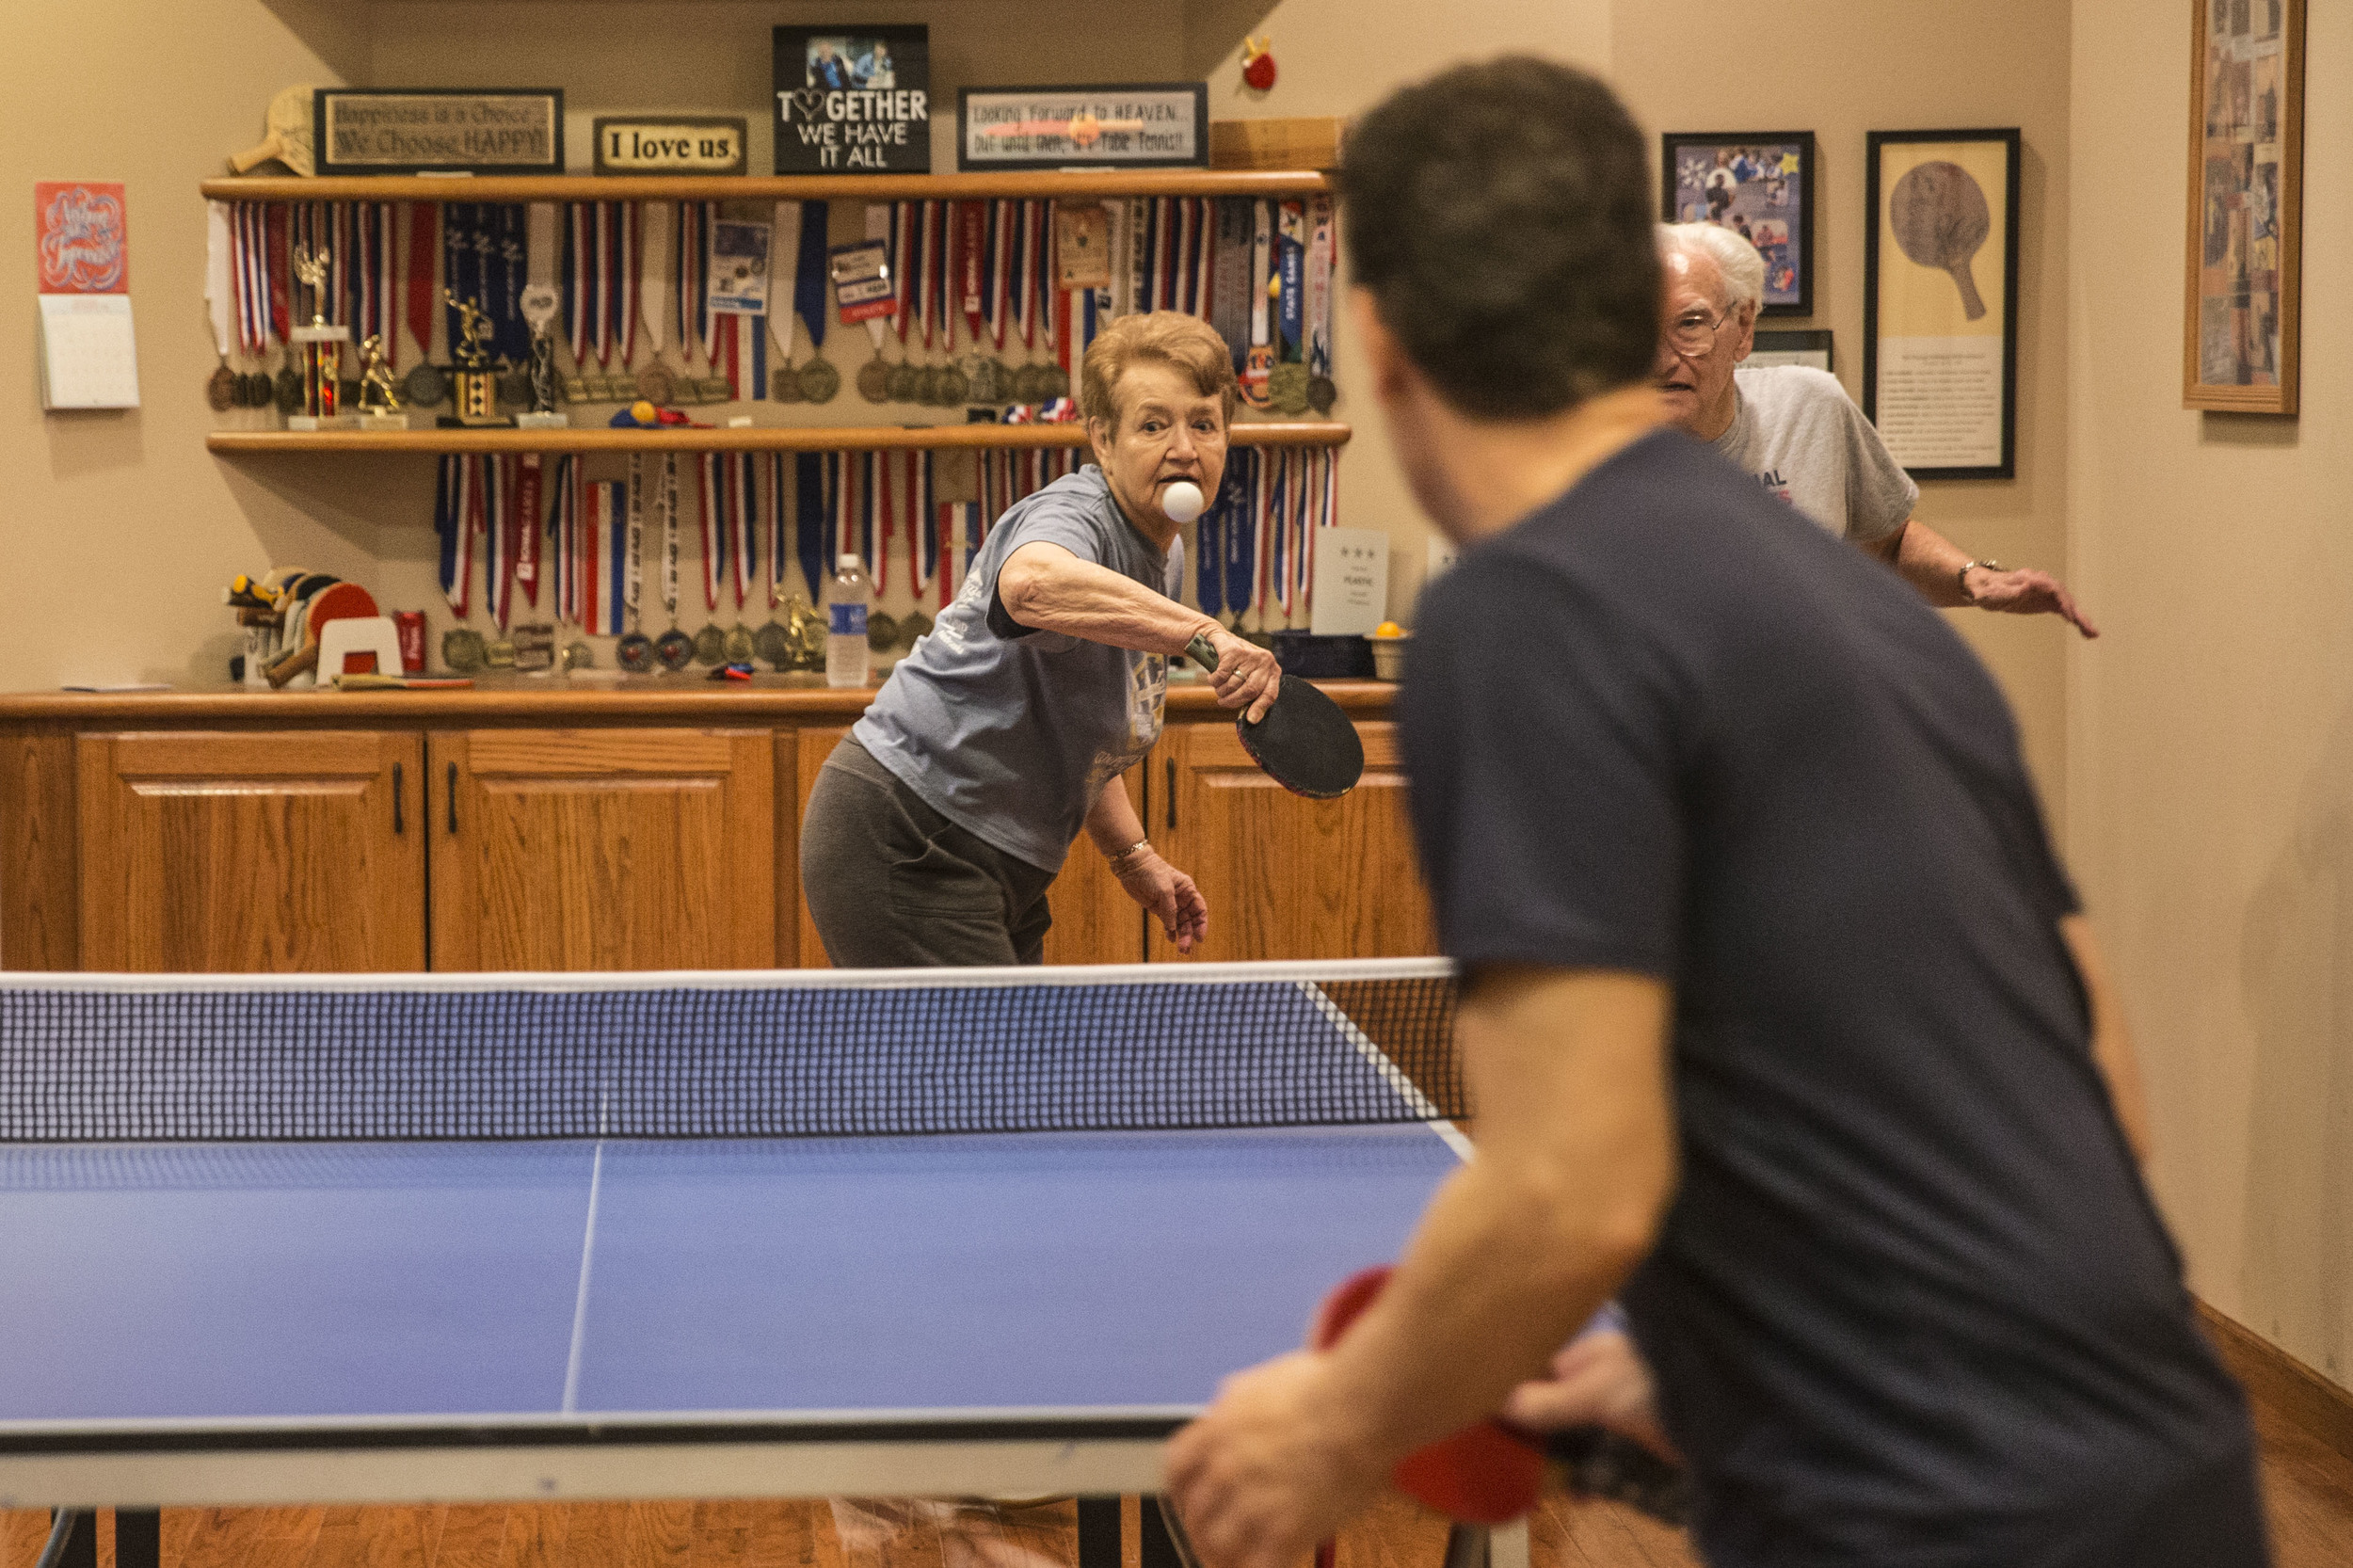 Jared & Leia play table tennis at their house's basement